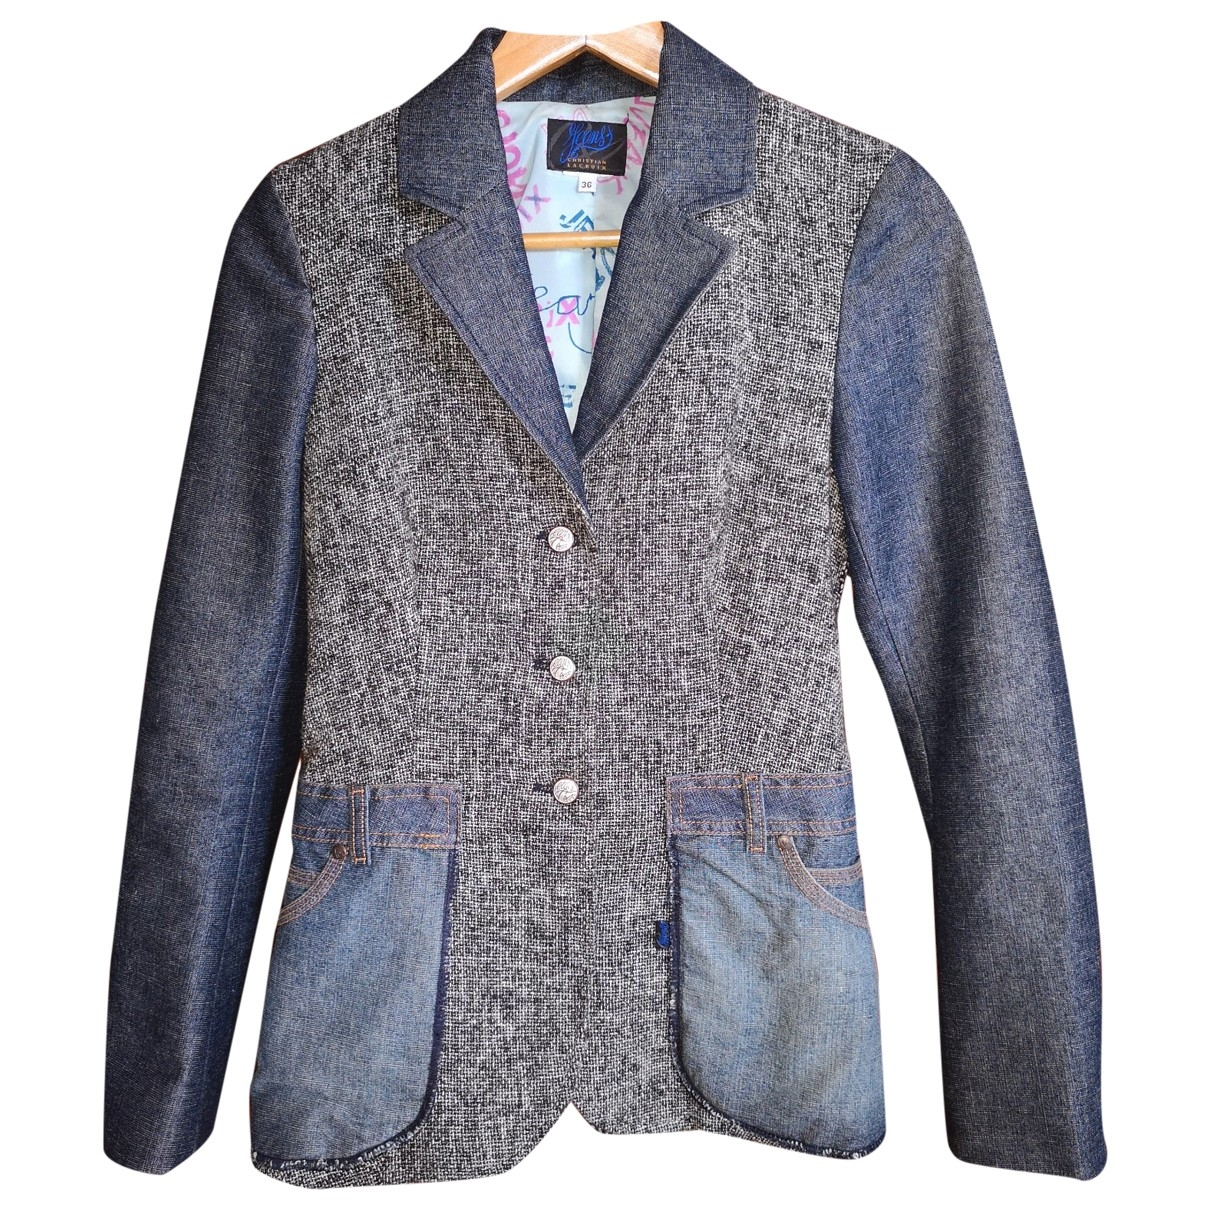 Christian Lacroix \N Jacke in  Blau Tweed